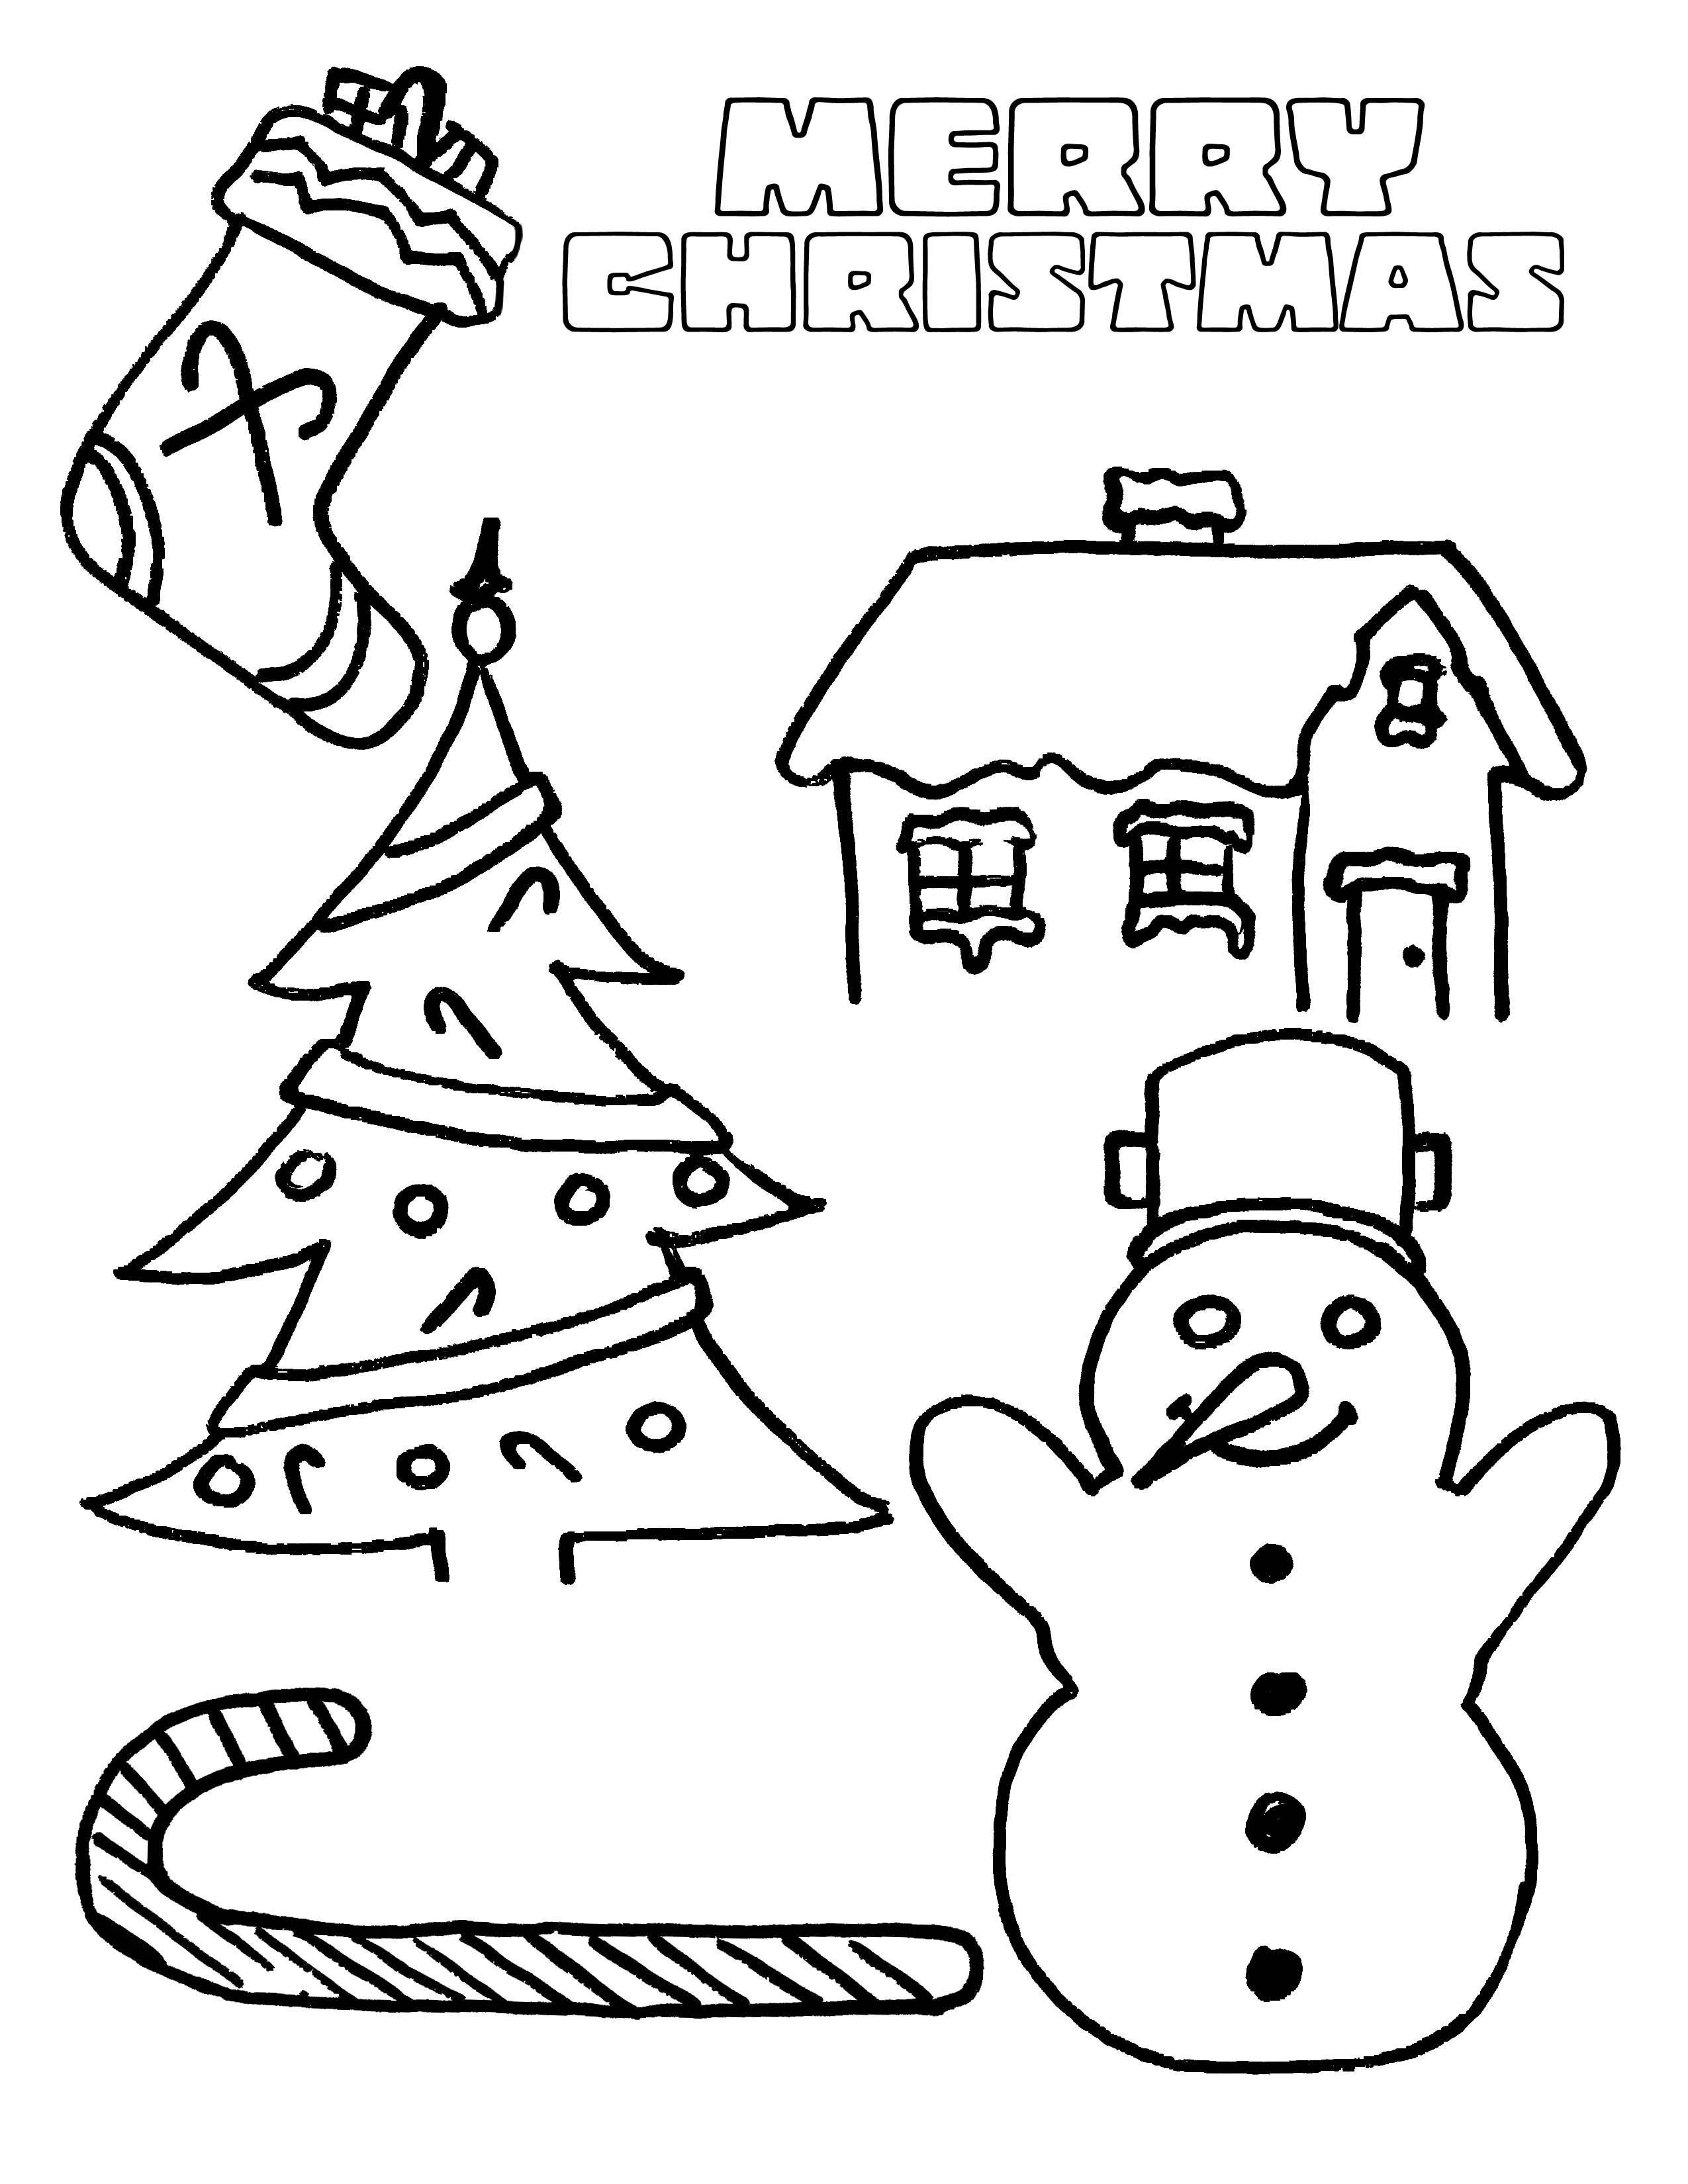 Coloring Pages : Coloring Pages Christmas Sheets For Kids Bingo - Free Printable Christmas Coloring Pages And Activities